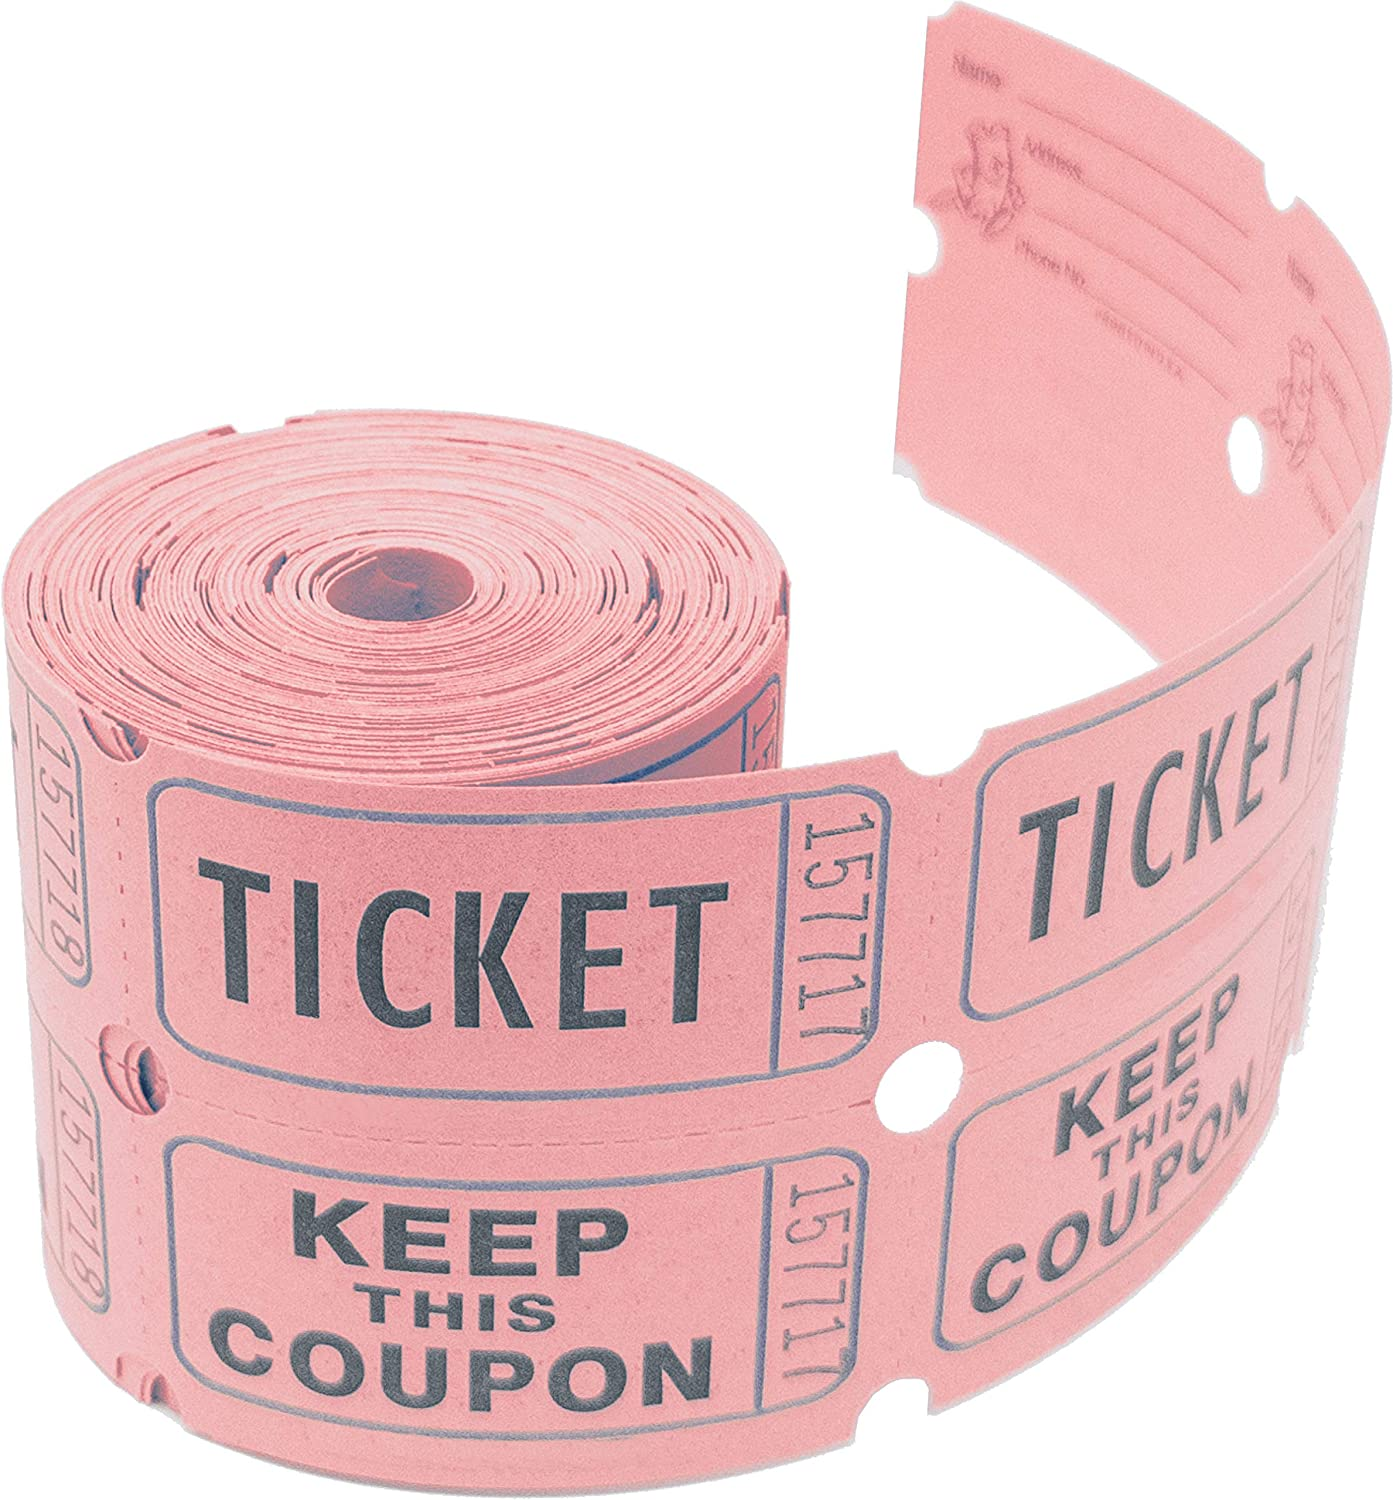 Tacticai 200 Pink Raffle Tickets (8 Colors Available) for Events, Entry, Class Reward, Admittance, or Fundraising, Tear Away Tickets, Brightly Colored Paper (Double Roll - Keep) - Made in USA